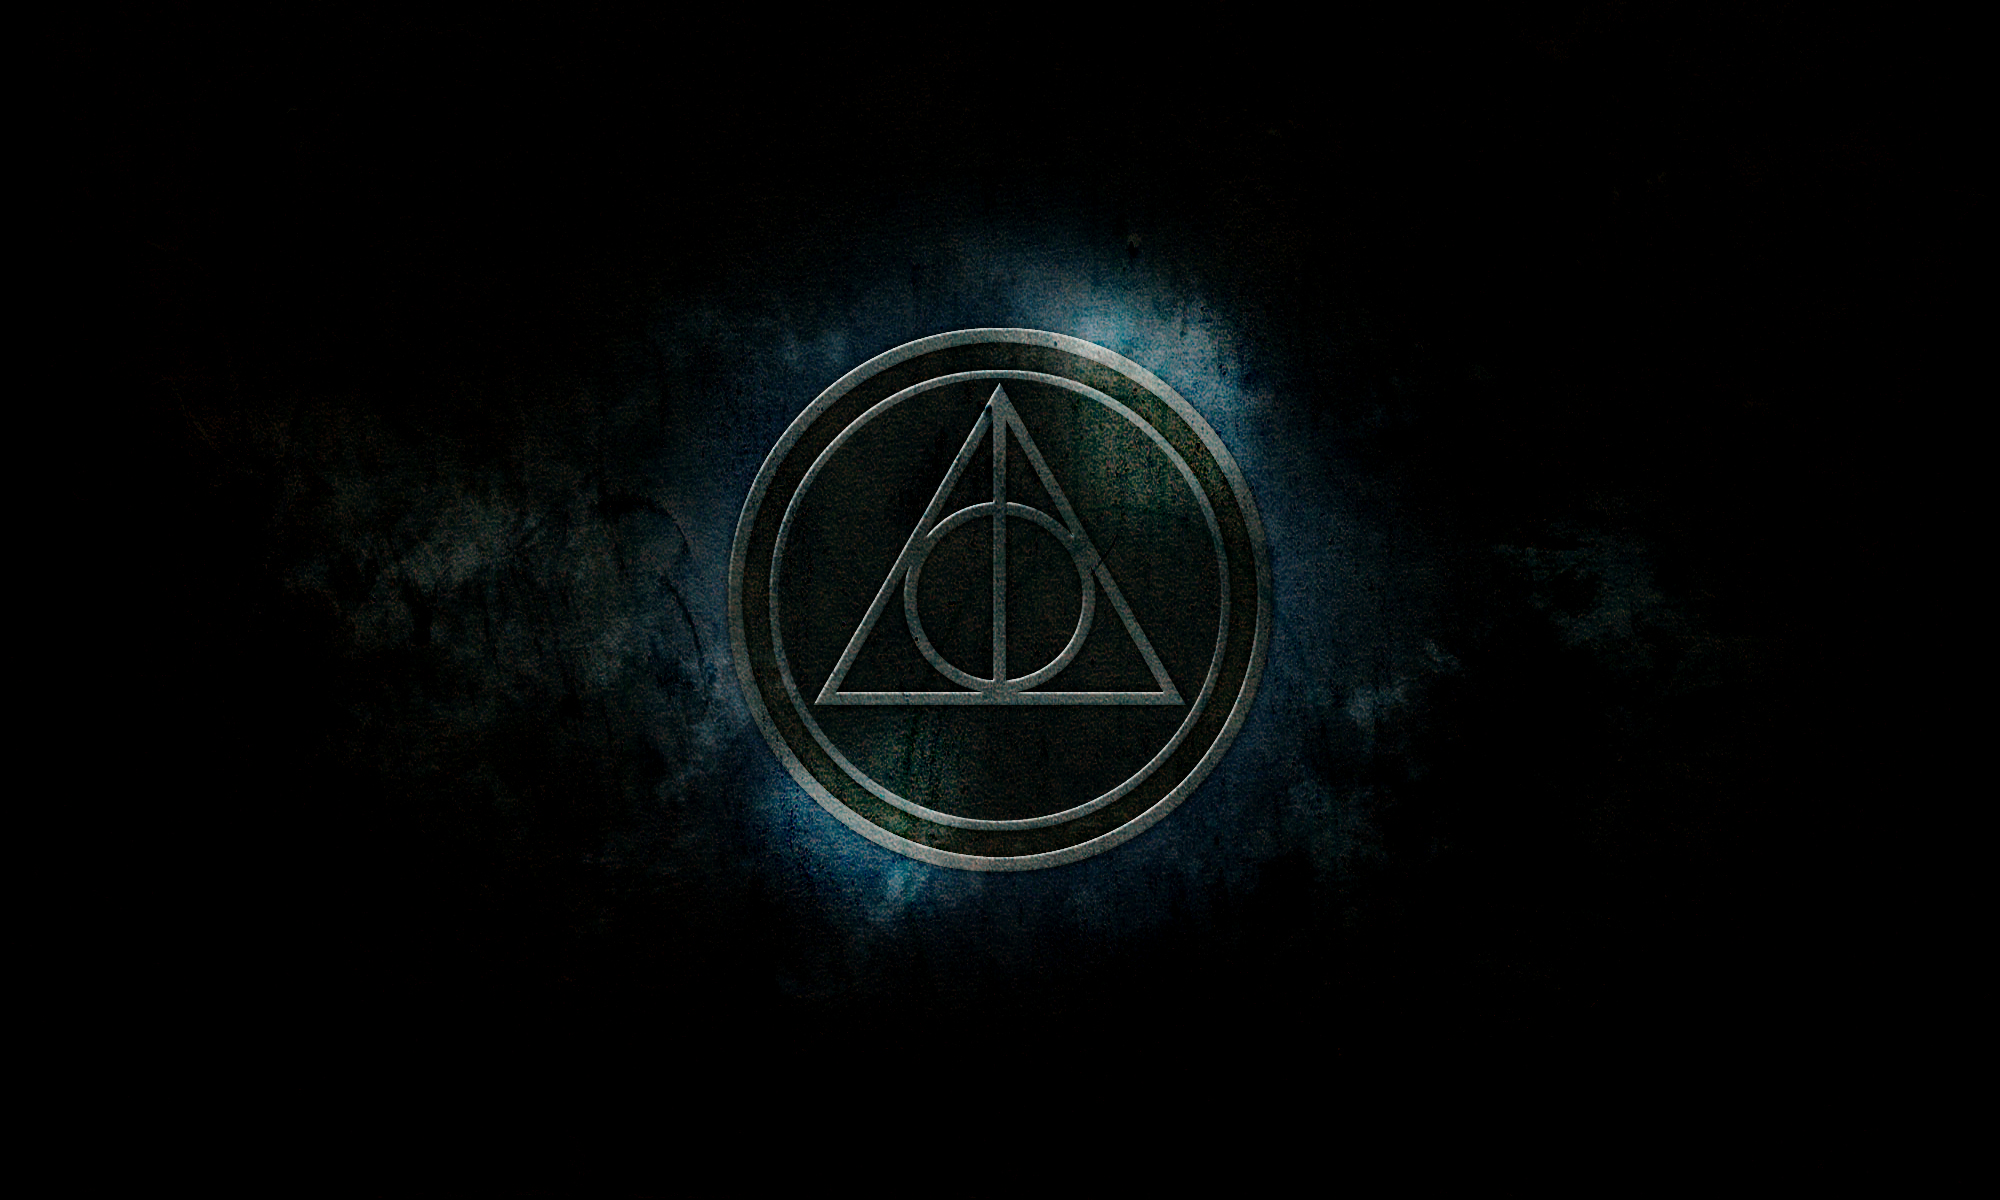 Harry Potter And The Deathly Hallows Wallpapers Hd